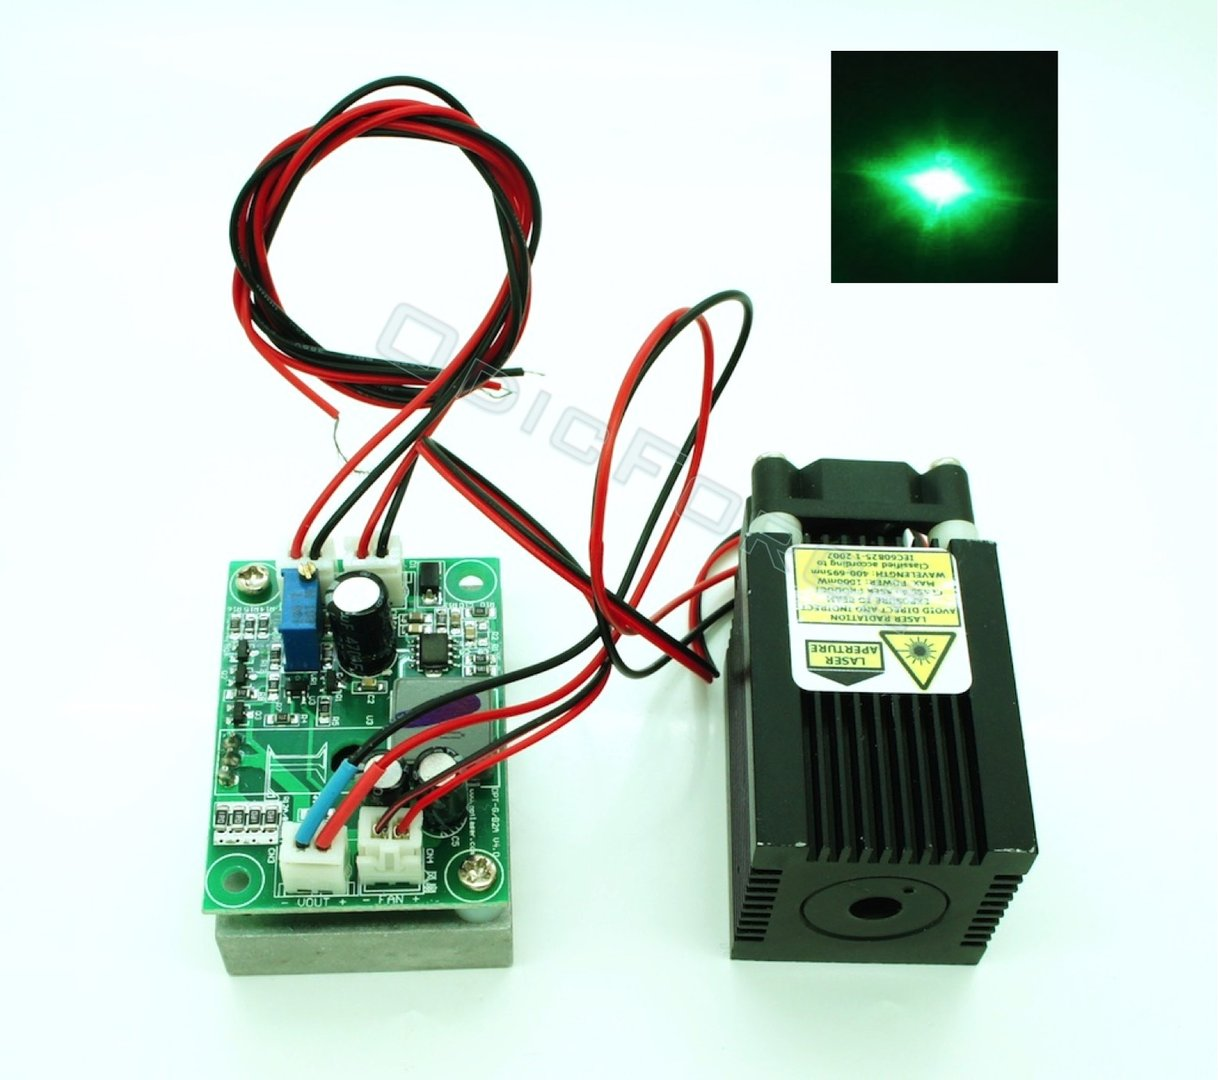 1000mW 520nm Direct Diode Green Laser Module with TTL Modulation (12V)